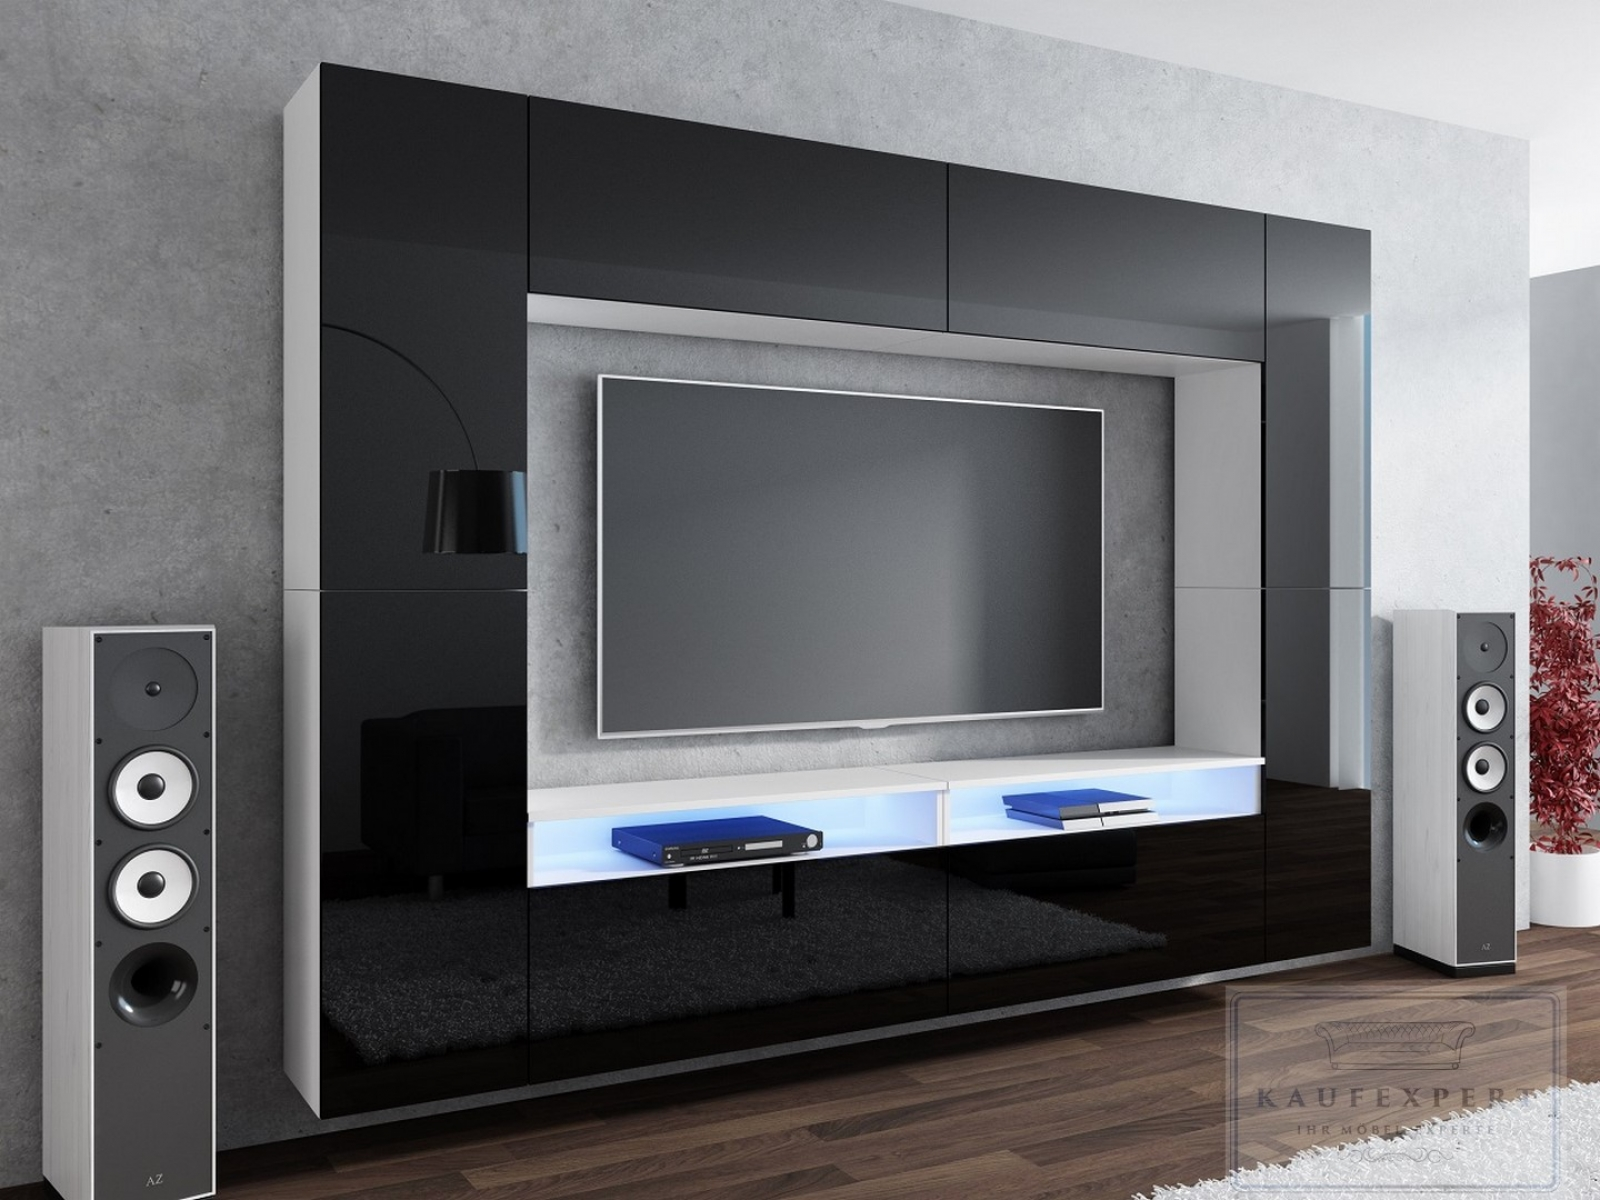 kaufexpert wohnwand cinema schwarz hochglanz wei mediawand medienwand design modern led. Black Bedroom Furniture Sets. Home Design Ideas